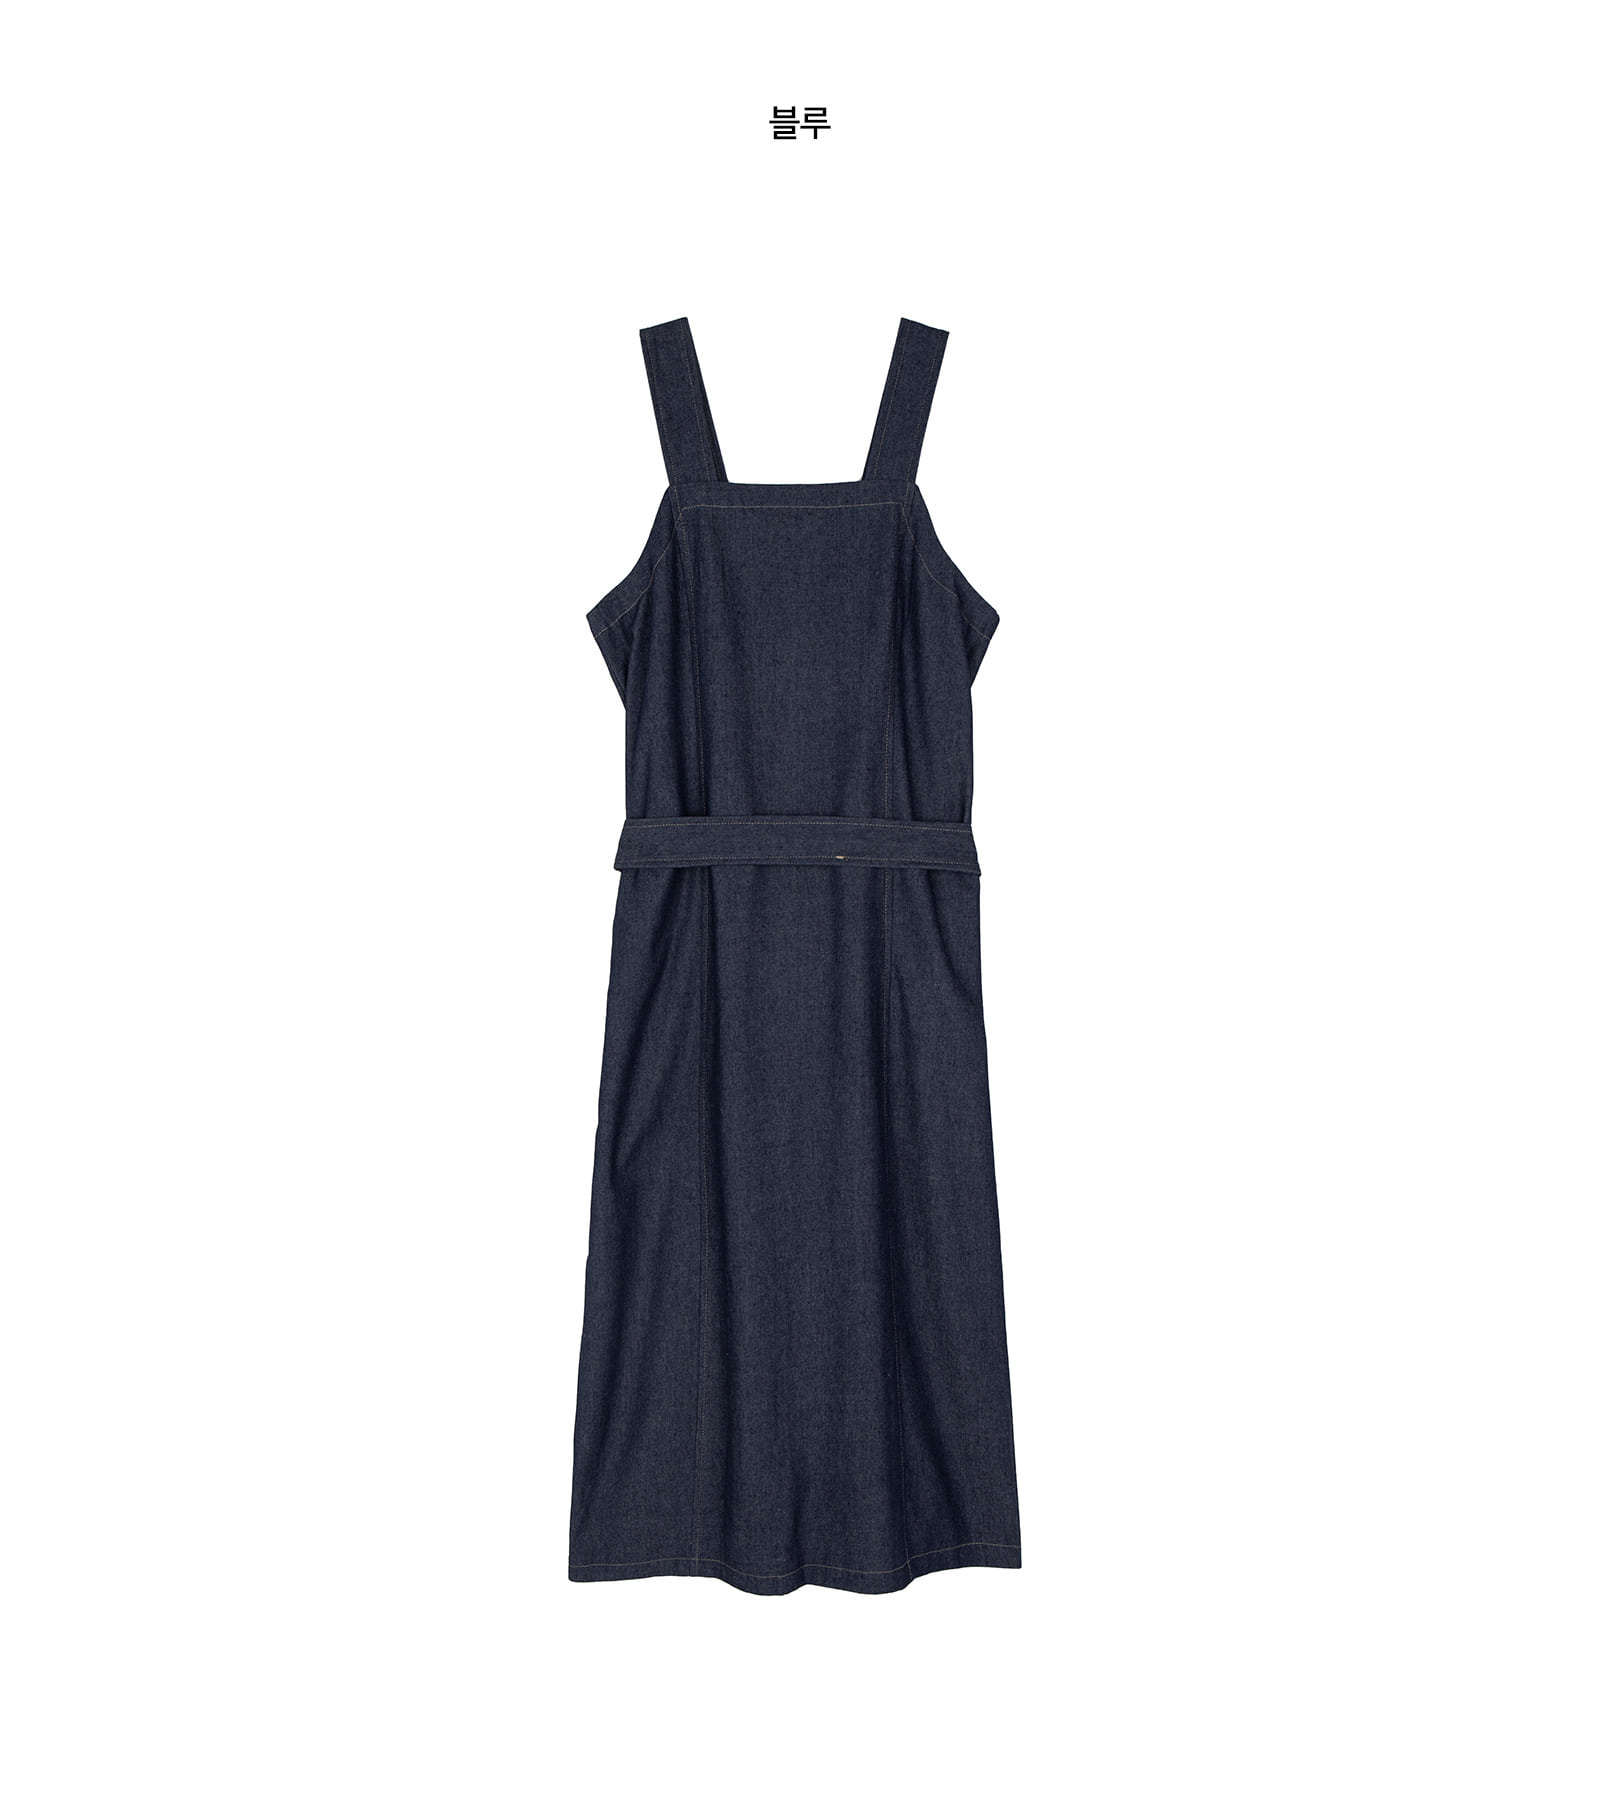 Moss denim stitch dress